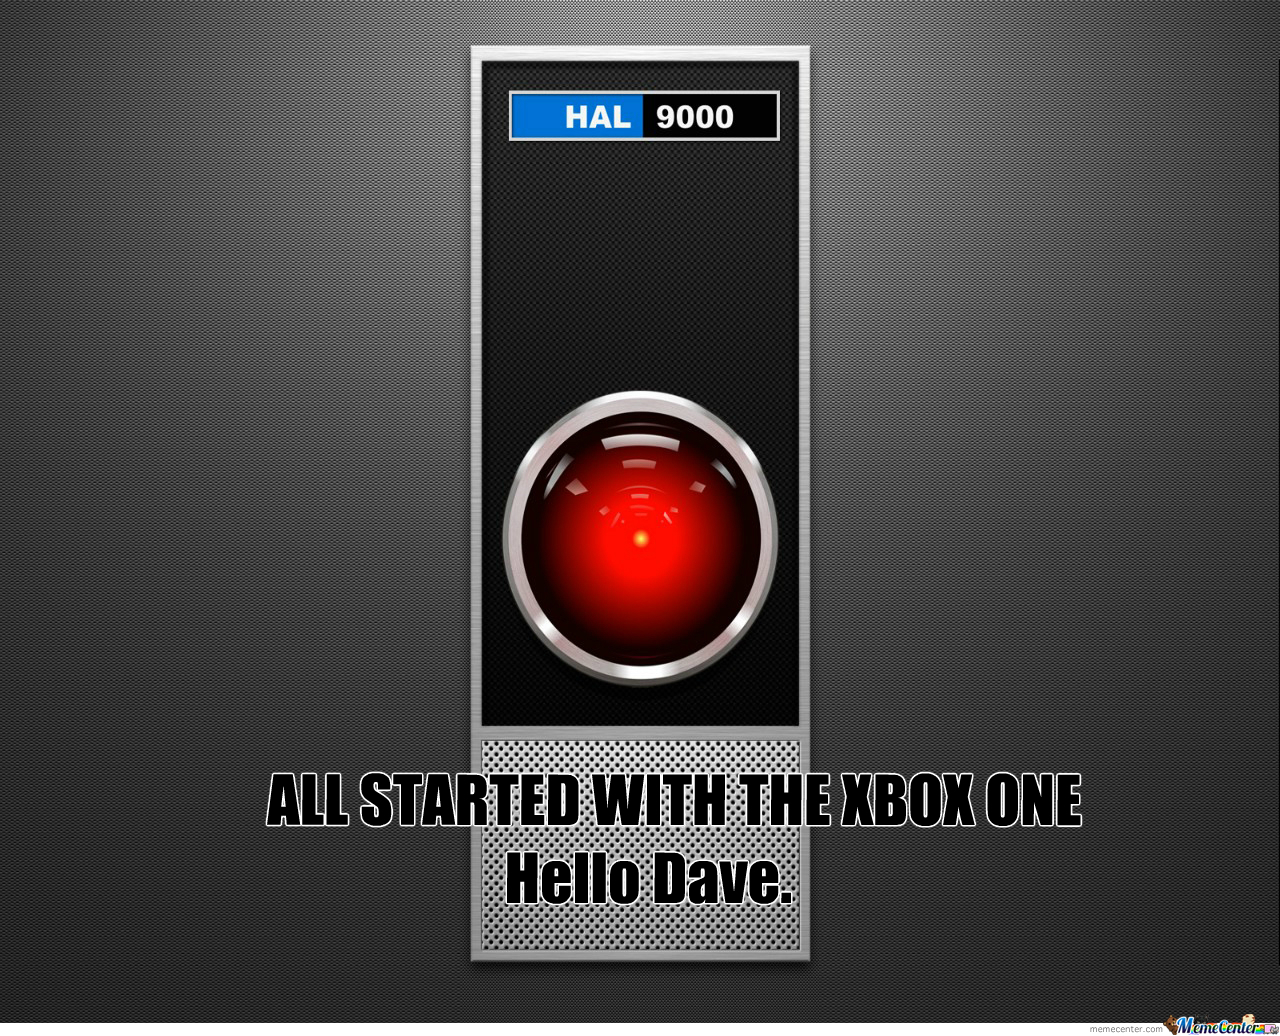 Funny Xbox Memes : Hal 9000 and the xbox one by lavawolf meme center